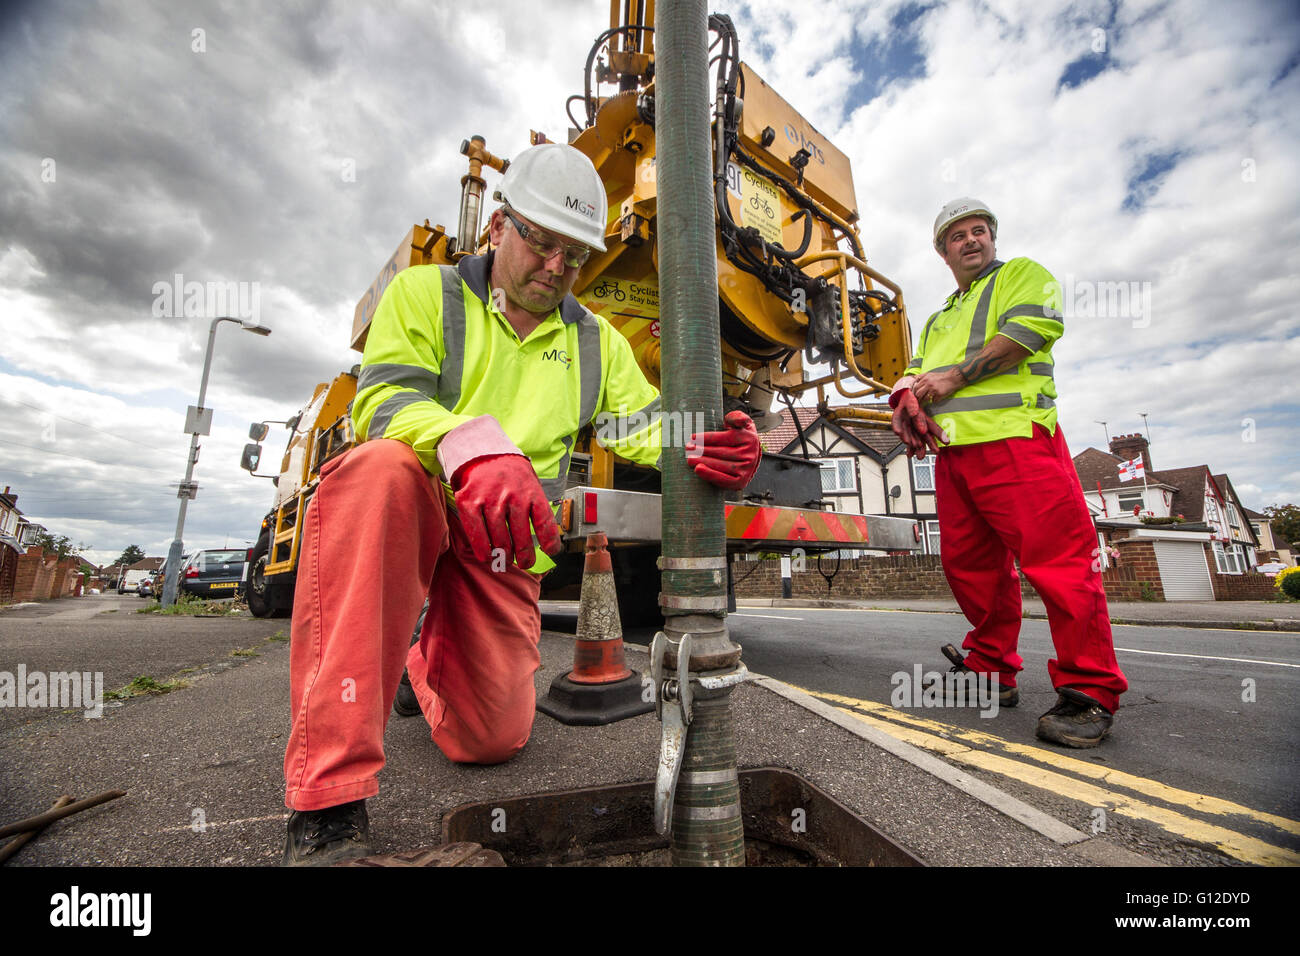 Thames Water Workers servicing network - Stock Image